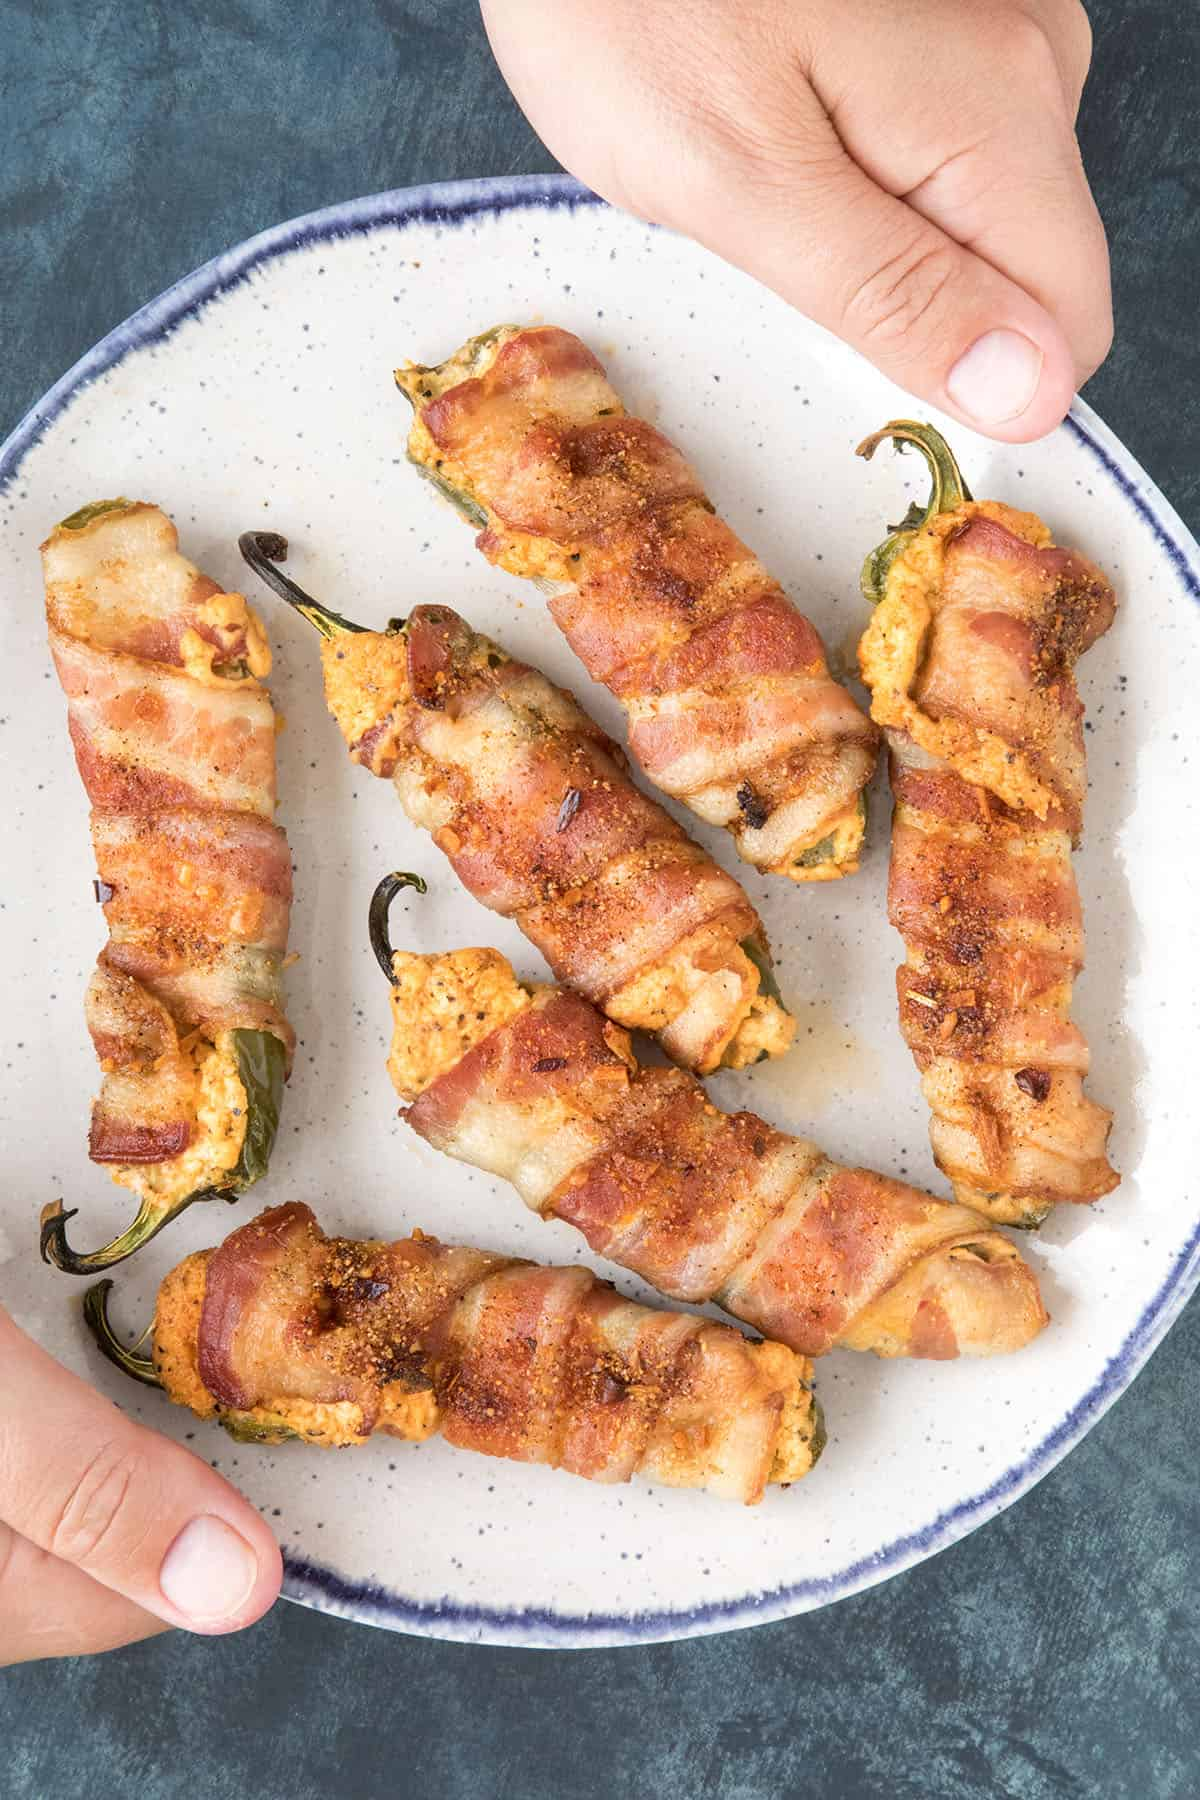 Bacon Wrapped Jalapeno Poppers - On a plate, ready to serve